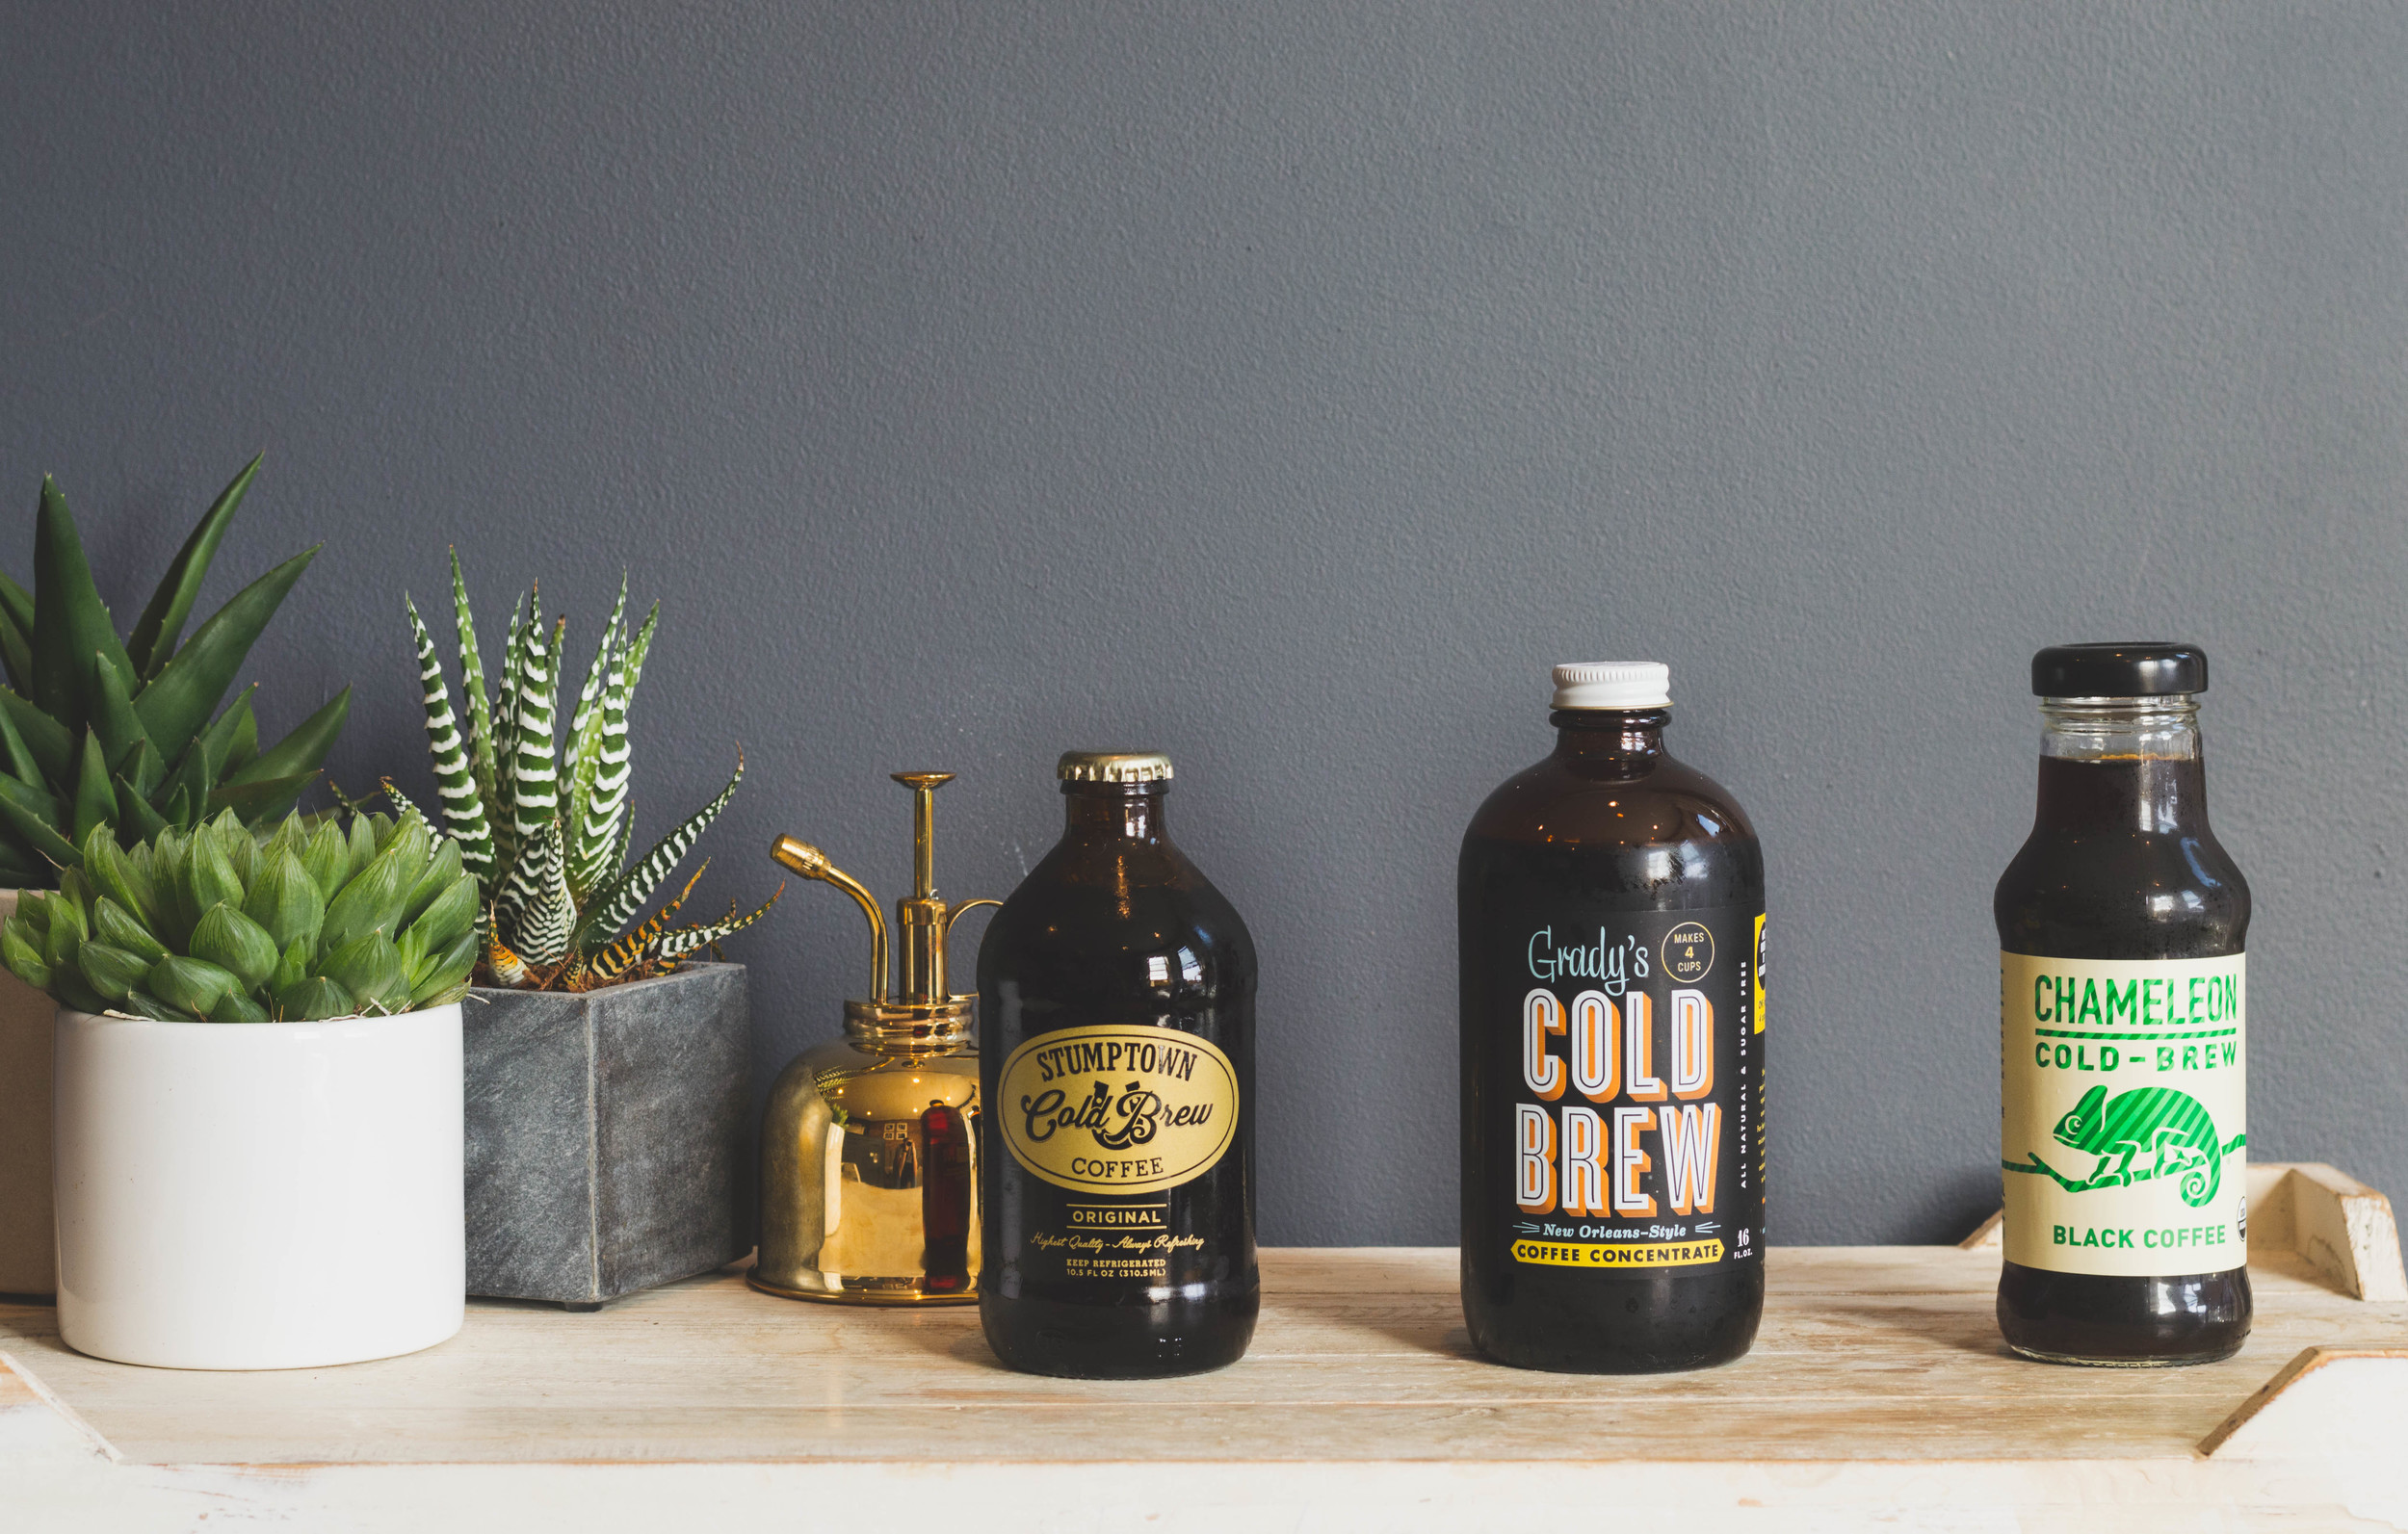 Cold Brew Coffee Review